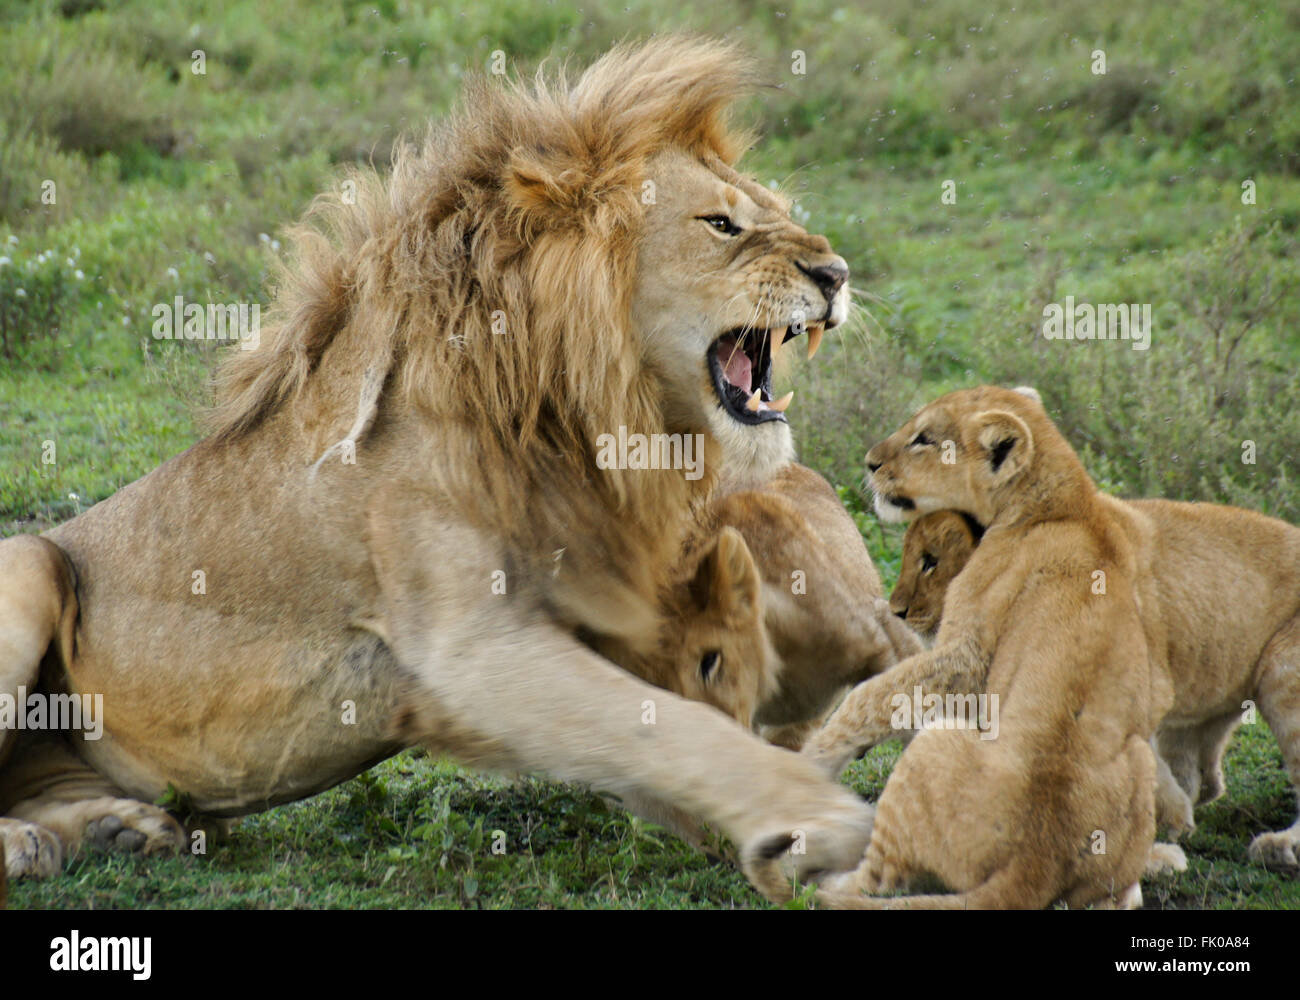 Male lion snarling at cubs, Ngorongoro Conservation Area (Ndutu), Tanzania - Stock Image